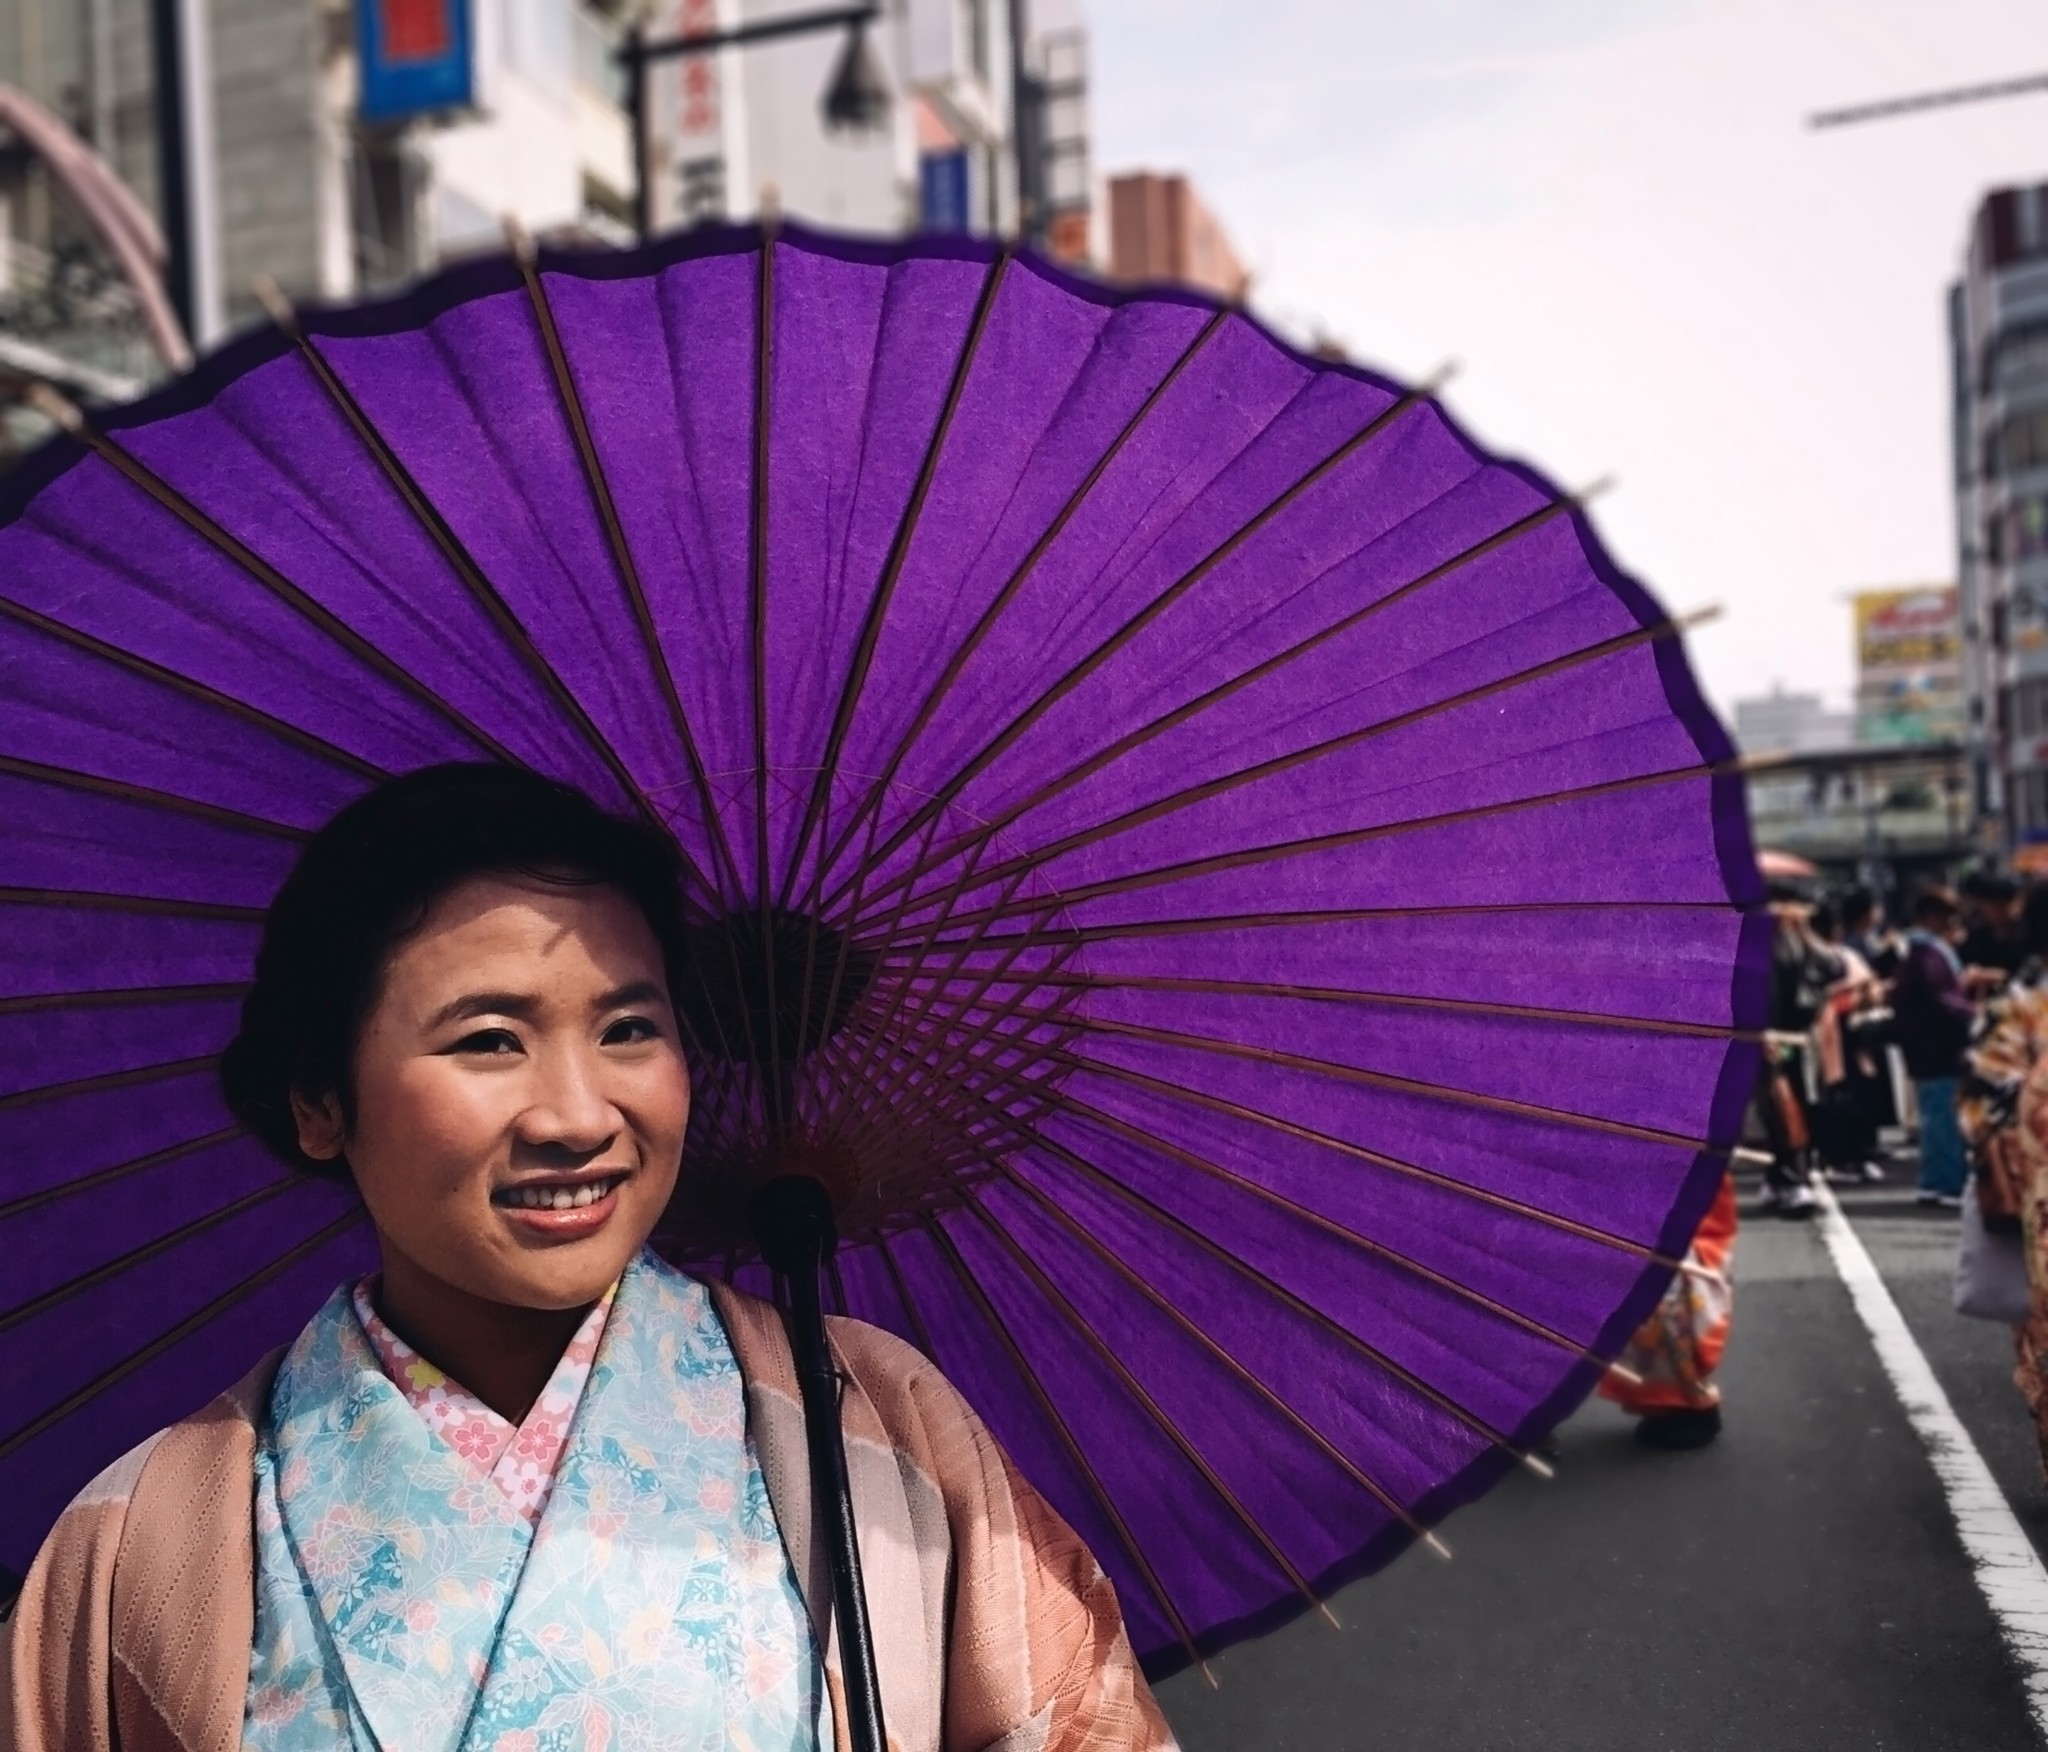 Lady with a Purple Parasol